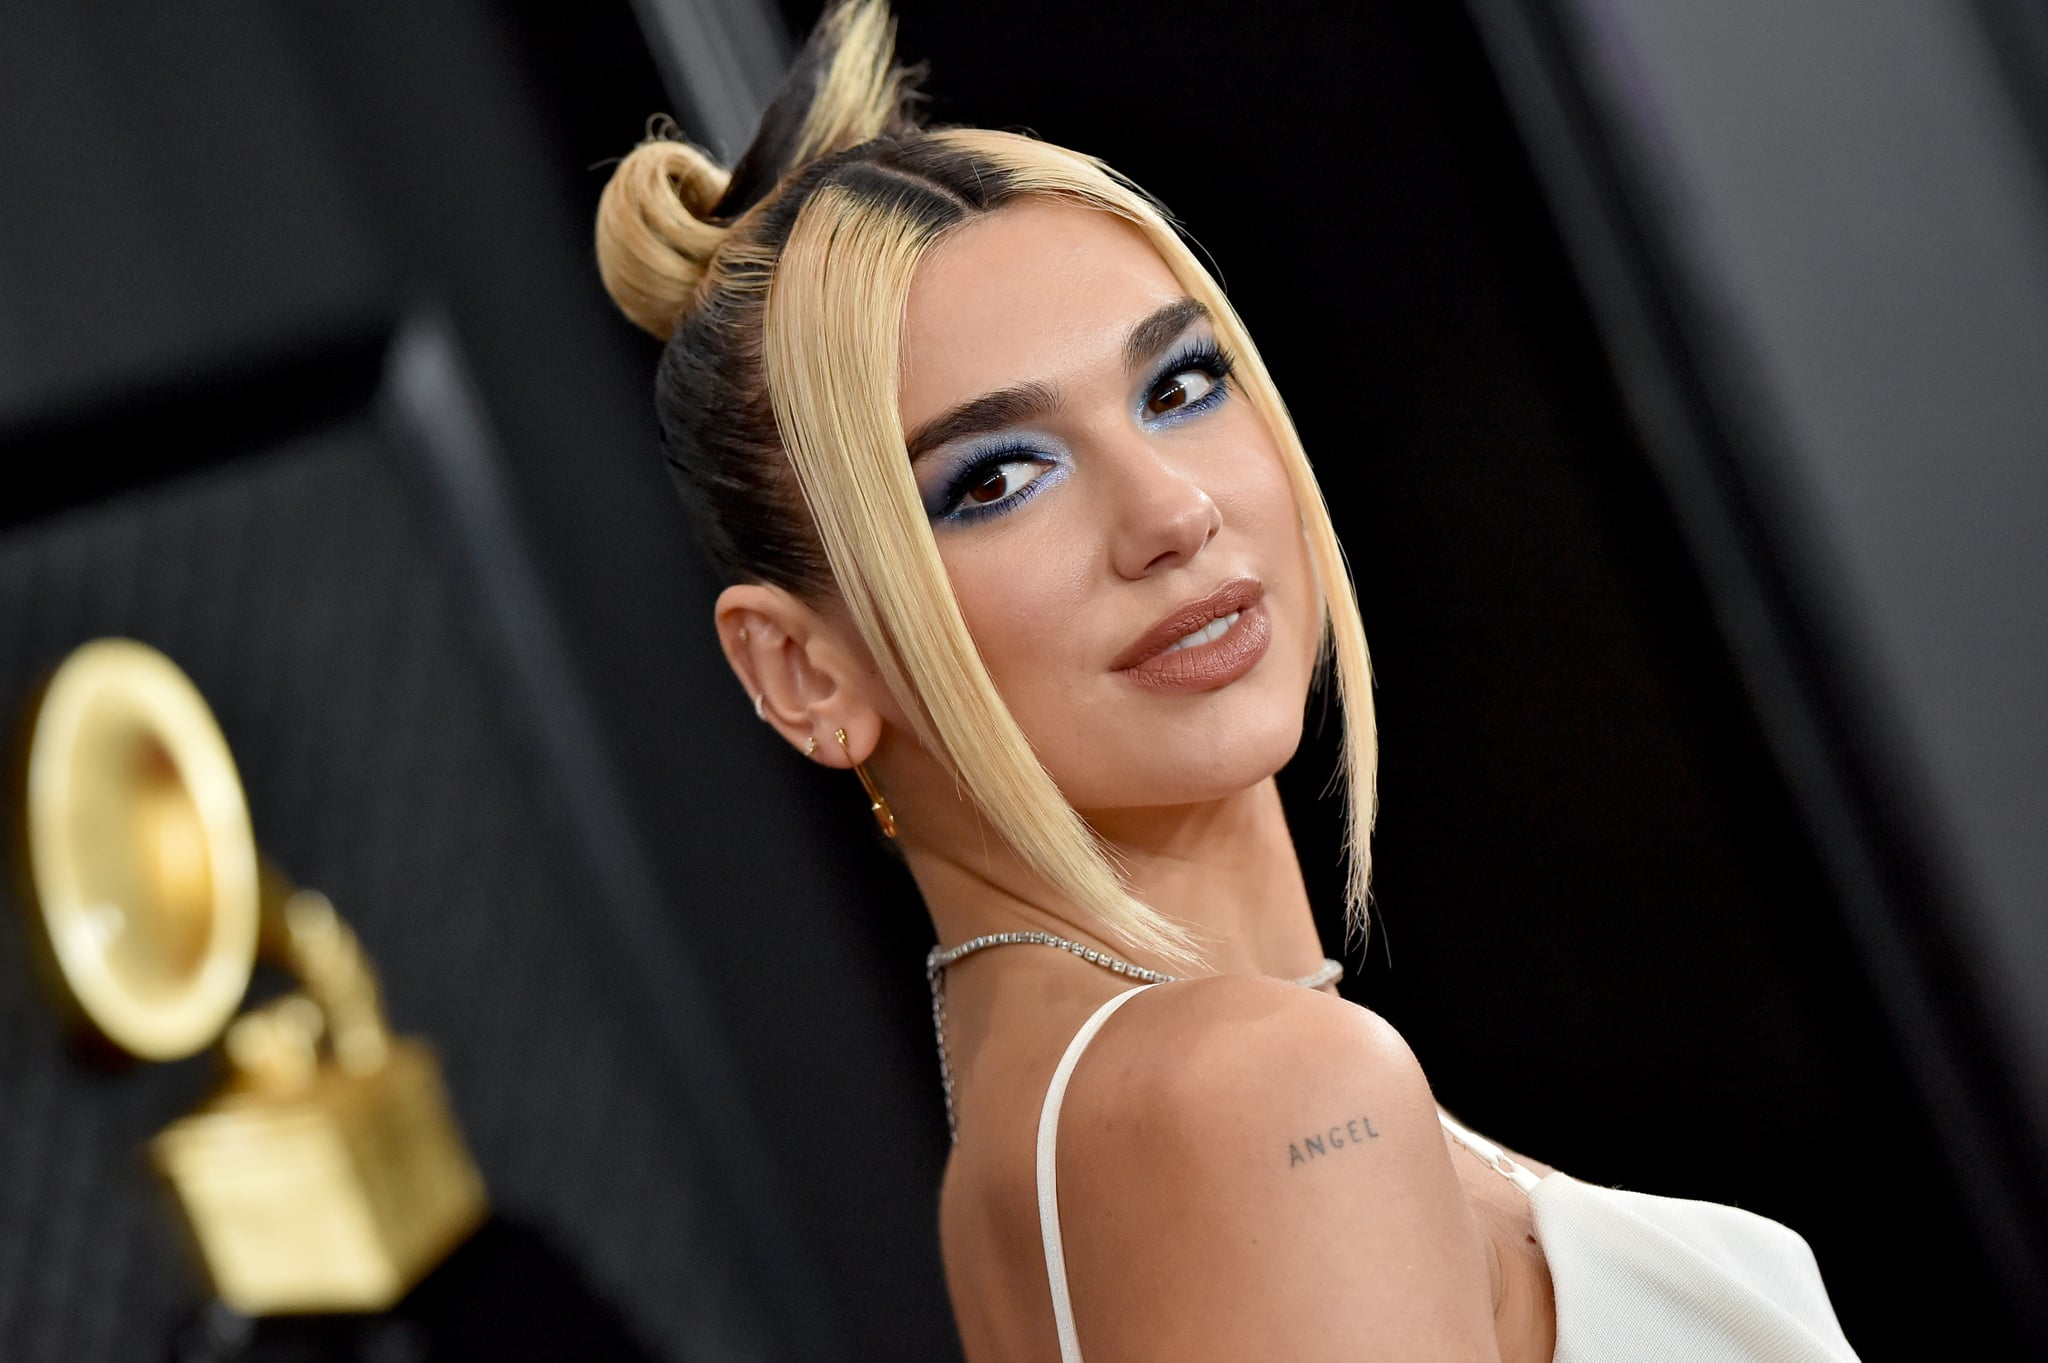 LOS ANGELES, CALIFORNIA - JANUARY 26: Dua Lipa attends the 62nd Annual GRAMMY Awards at Staples Centre on January 26, 2020 in Los Angeles, California. (Photo by Axelle/Bauer-Griffin/FilmMagic)